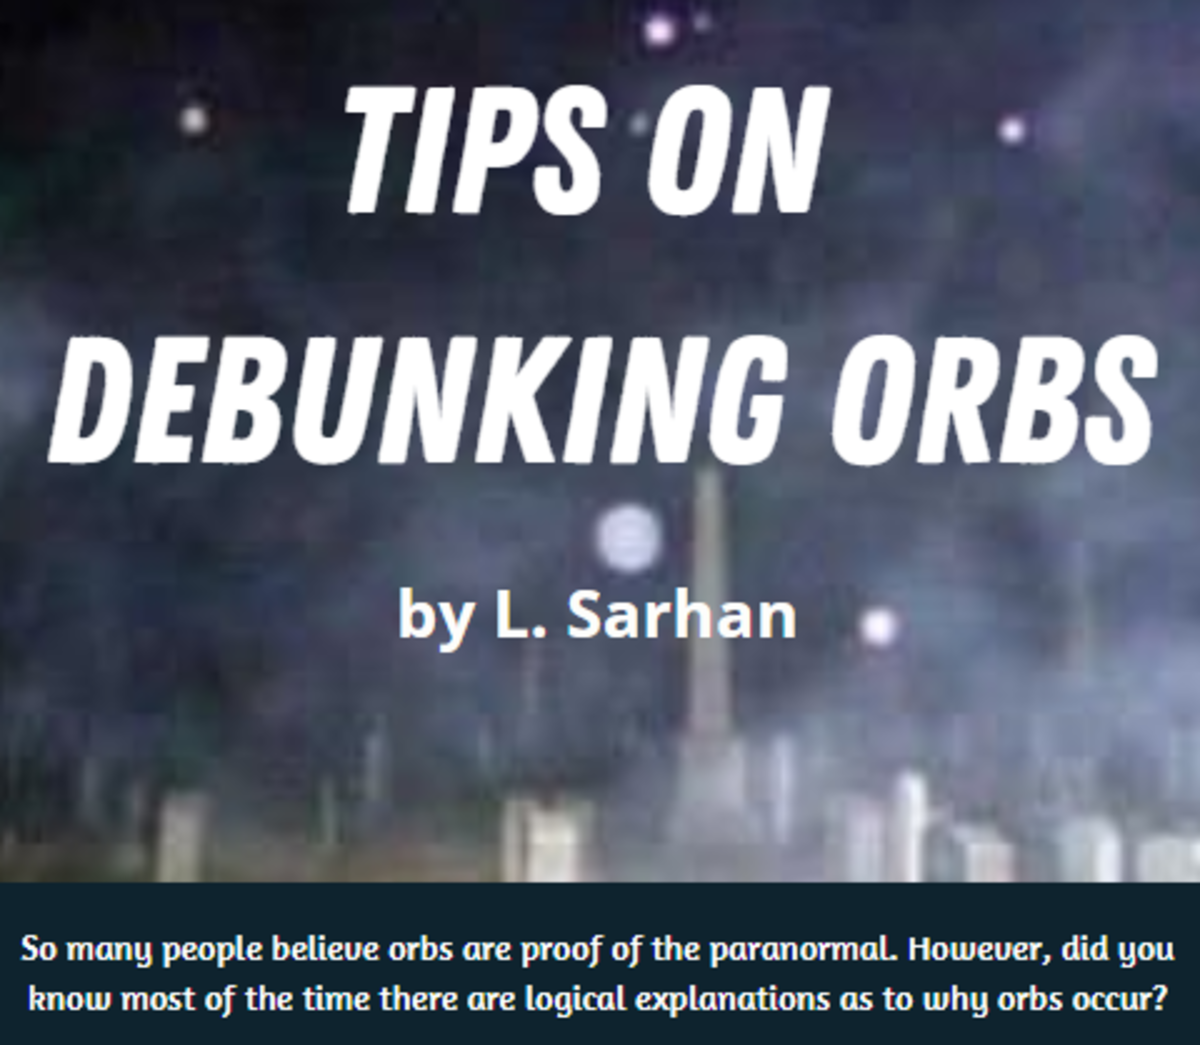 So many people believe orbs are proof of the paranormal. However, did you know most of the time there are logical explanations as to why orbs occur?